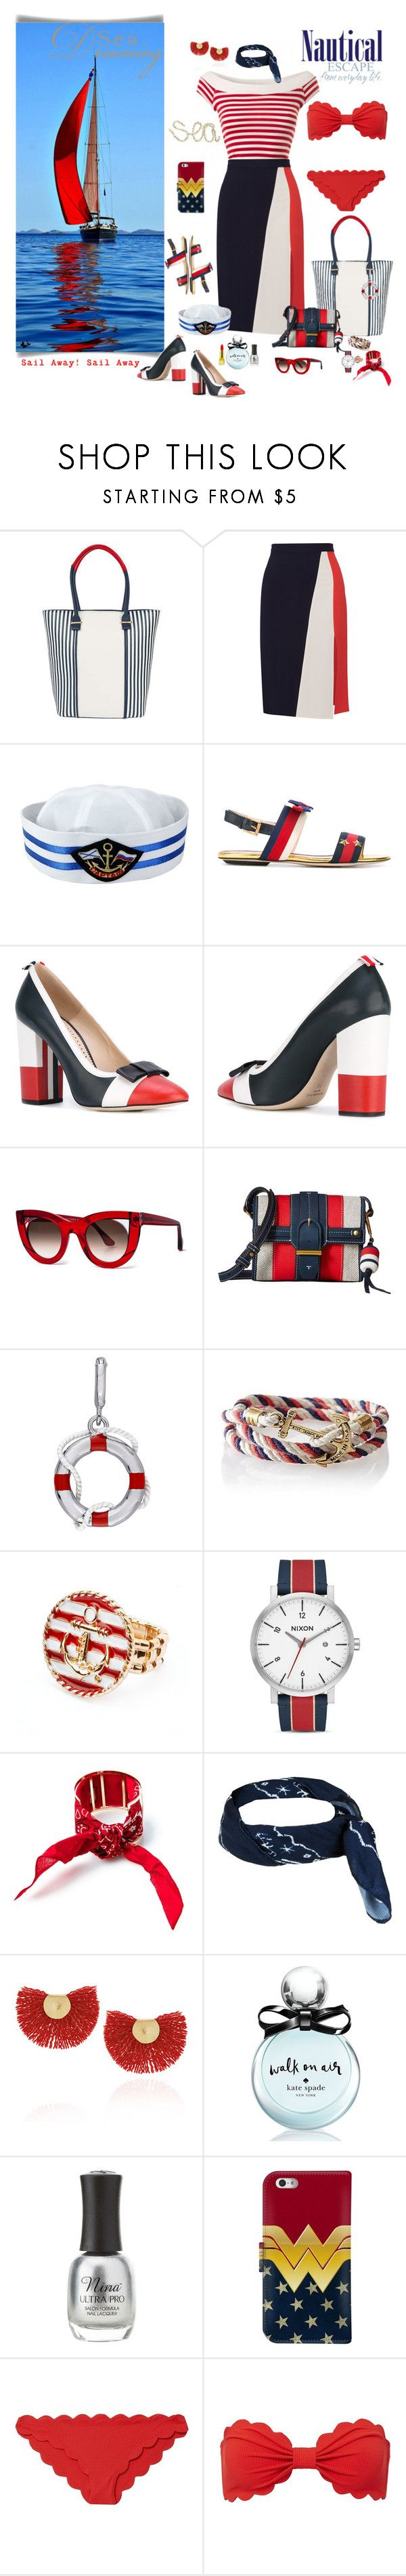 """Come sail away"" by deborah-518 ❤ liked on Polyvore featuring Pia Rossini, Tanya Taylor, Prabal Gurung, Gucci, Thom Browne, Thierry Lasry, Tory Burch, Laura Ashley, Mark & Graham and Oxford"